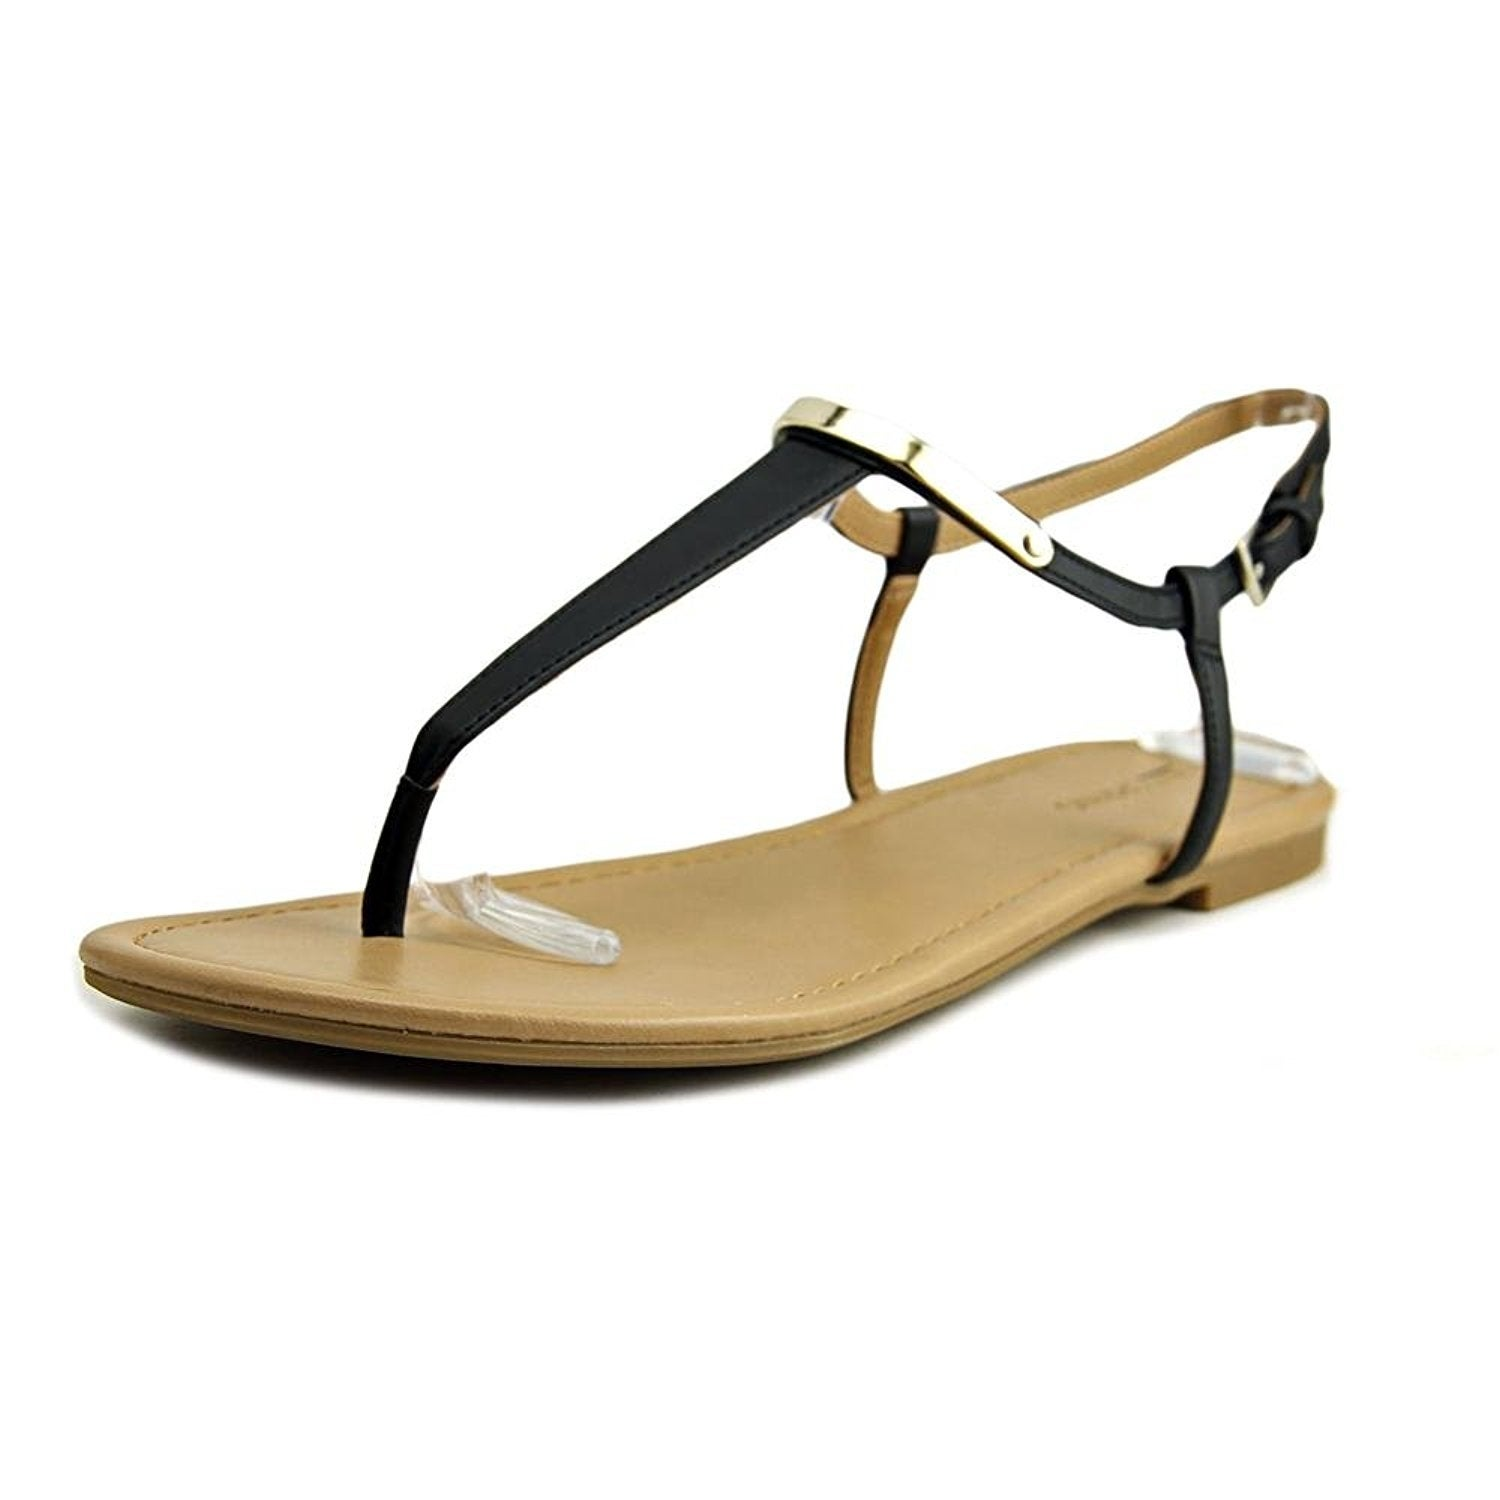 d4721854ed85 Buy Black Women s Sandals Sale Online at Overstock